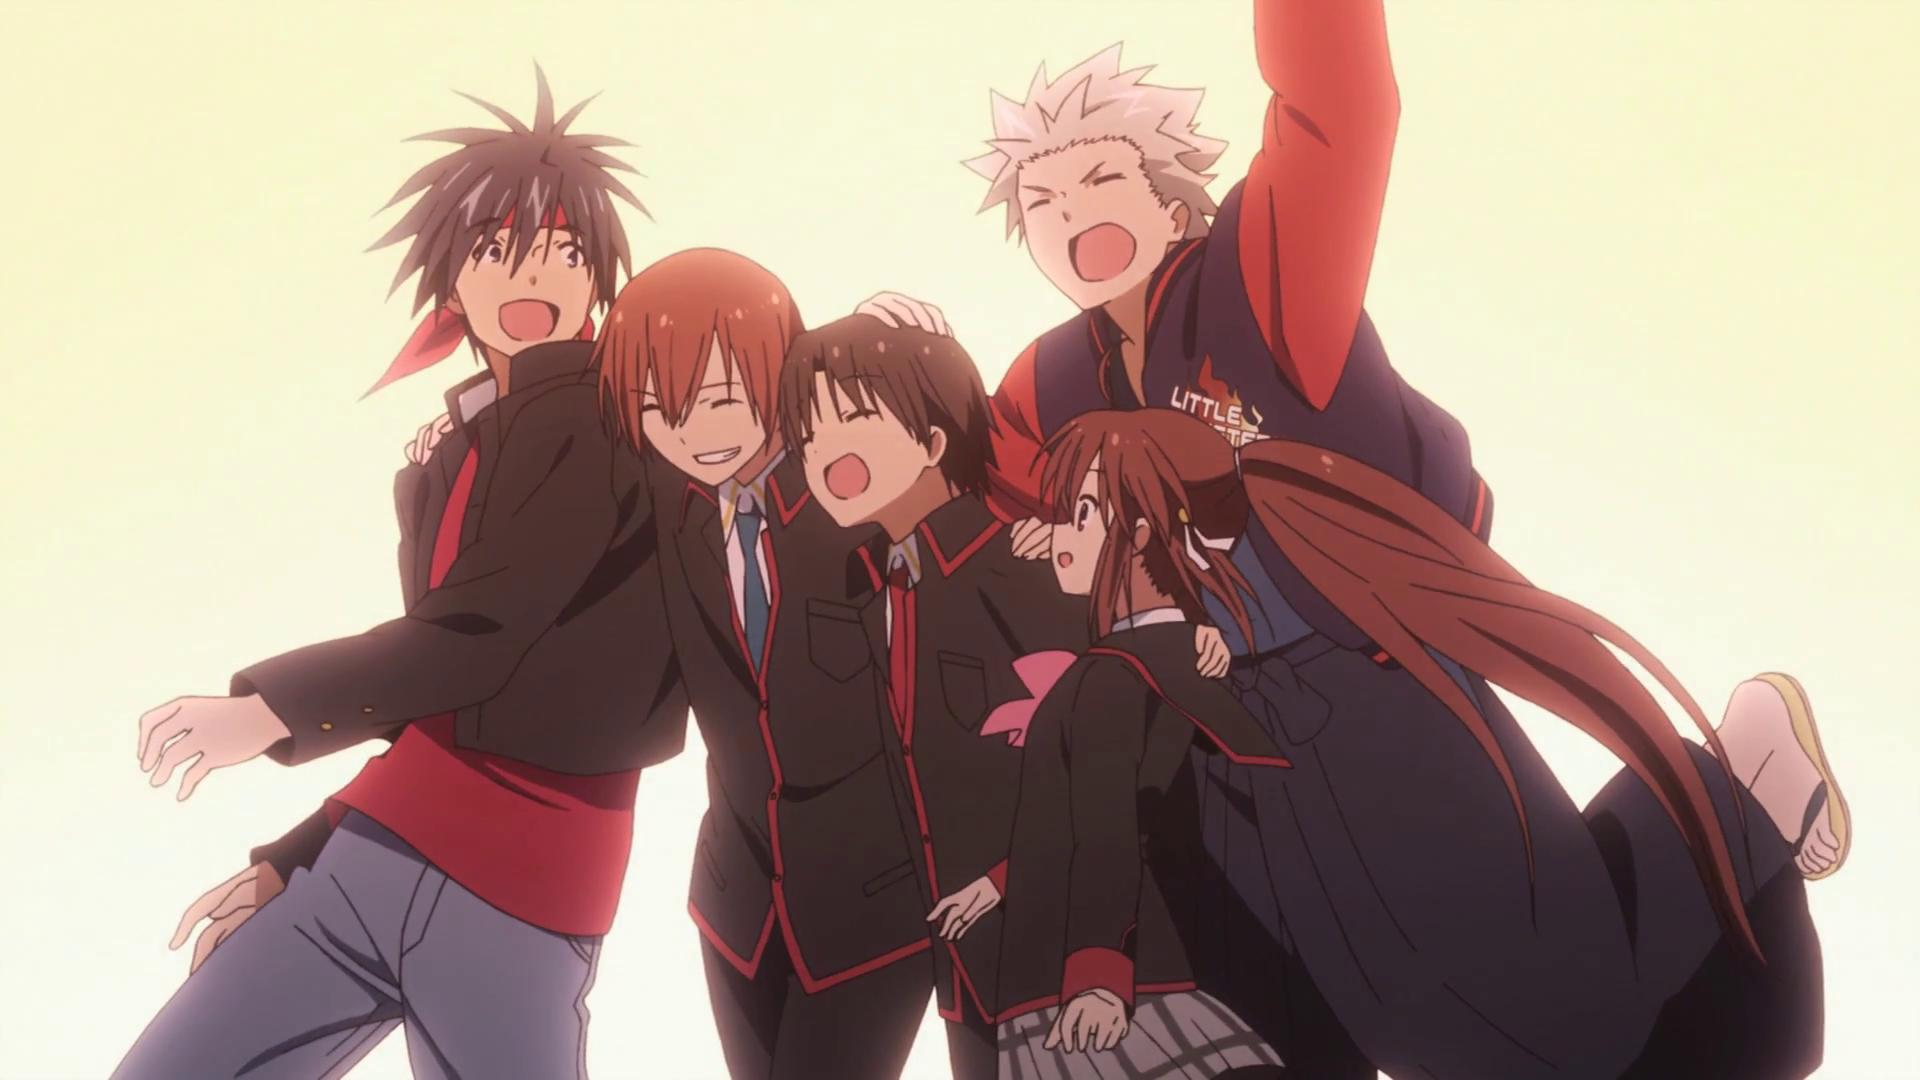 Blu-ray Boxsets Announced for Little Busters! ~Refrain~ and EX